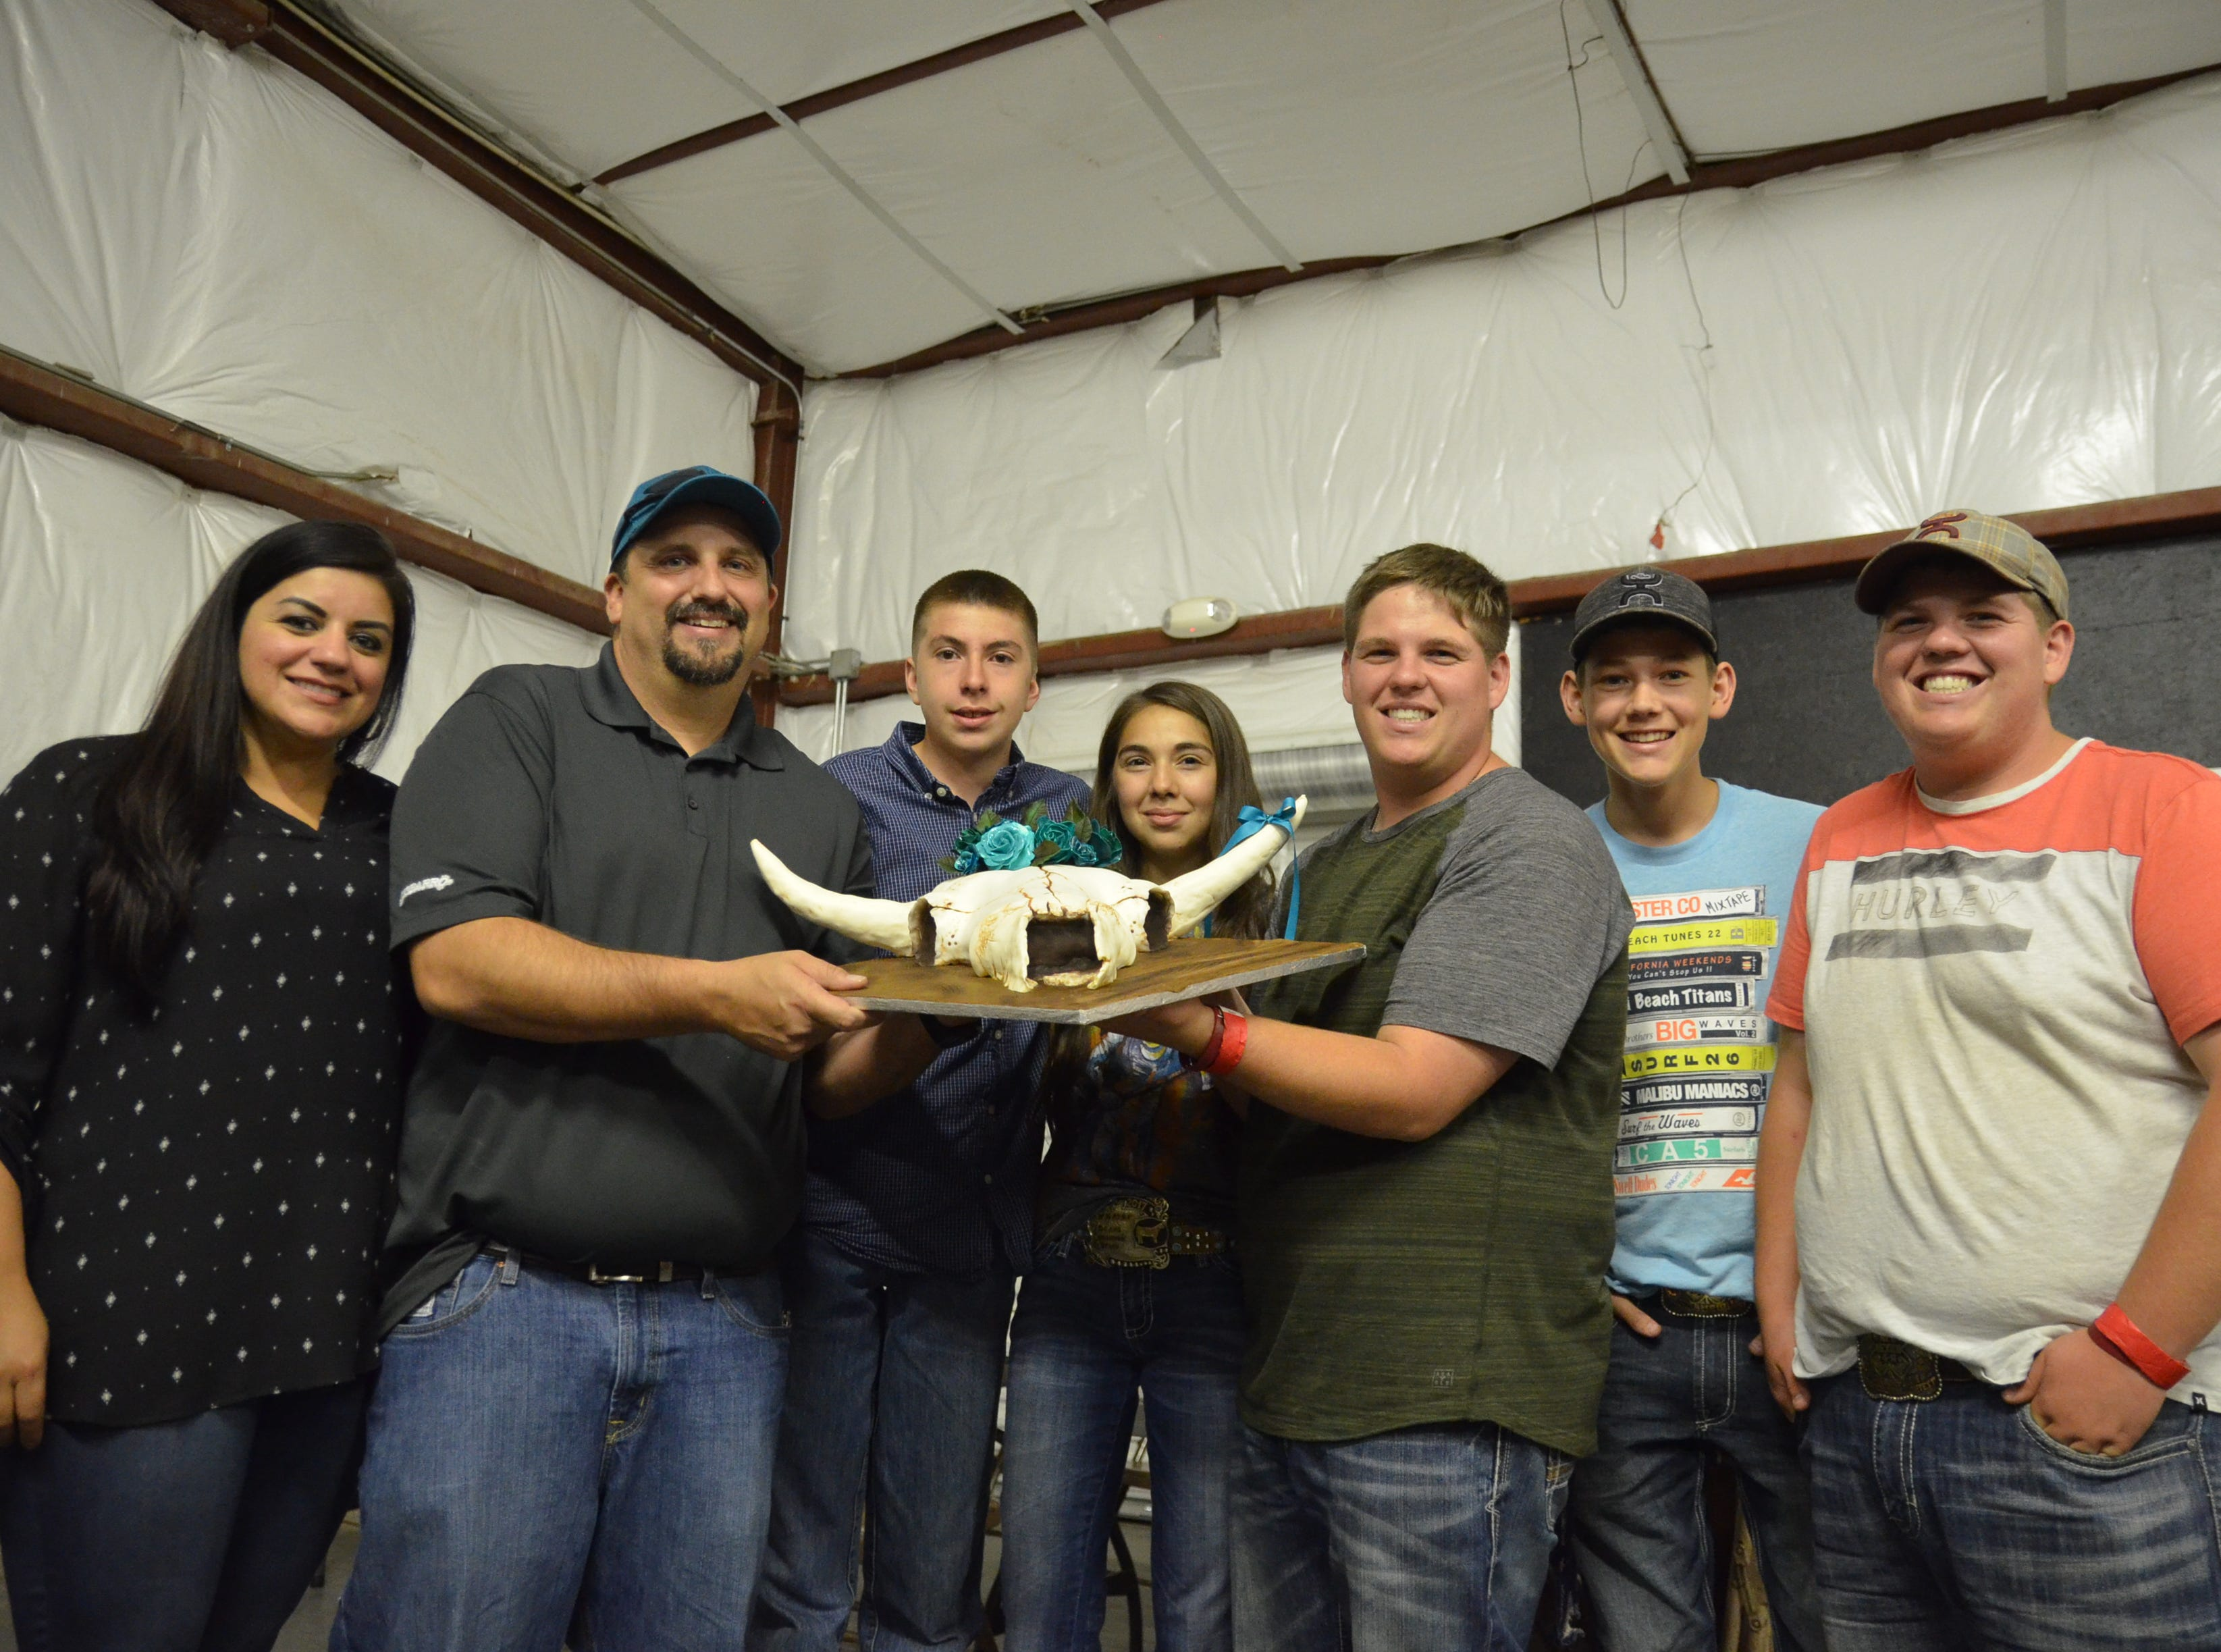 Local groups Honey Badgers, Sisbarro Super Store and Mizkan America Inc. placed the highest bid of $2,050 at the cake auction during the SWNMSF Royalty Pageant at the Luna County fairgrounds on Thursday.